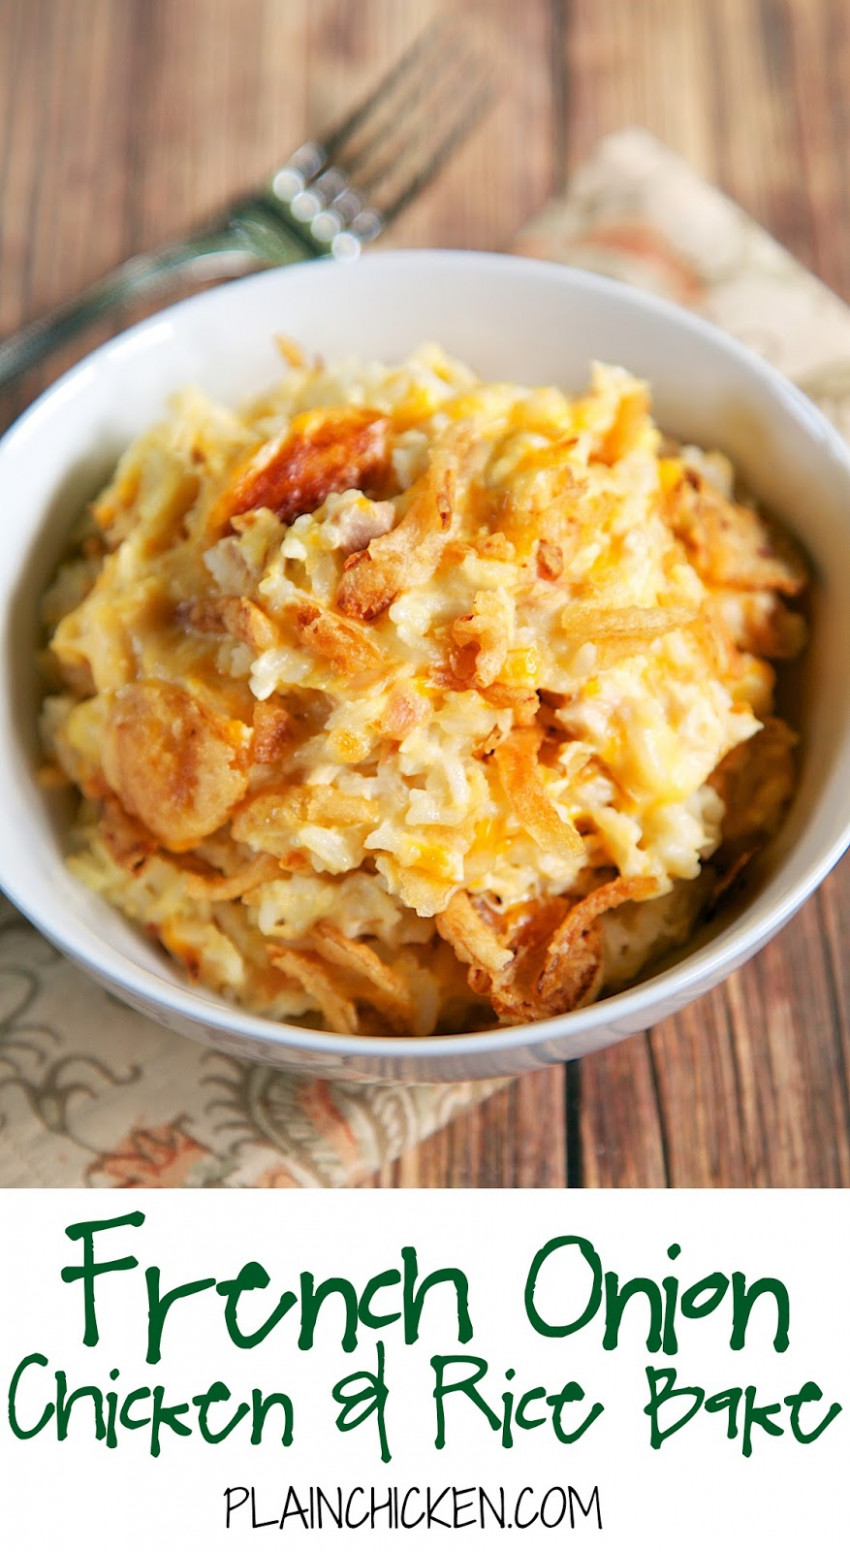 baked rice with chicken broth - french recipes chicken